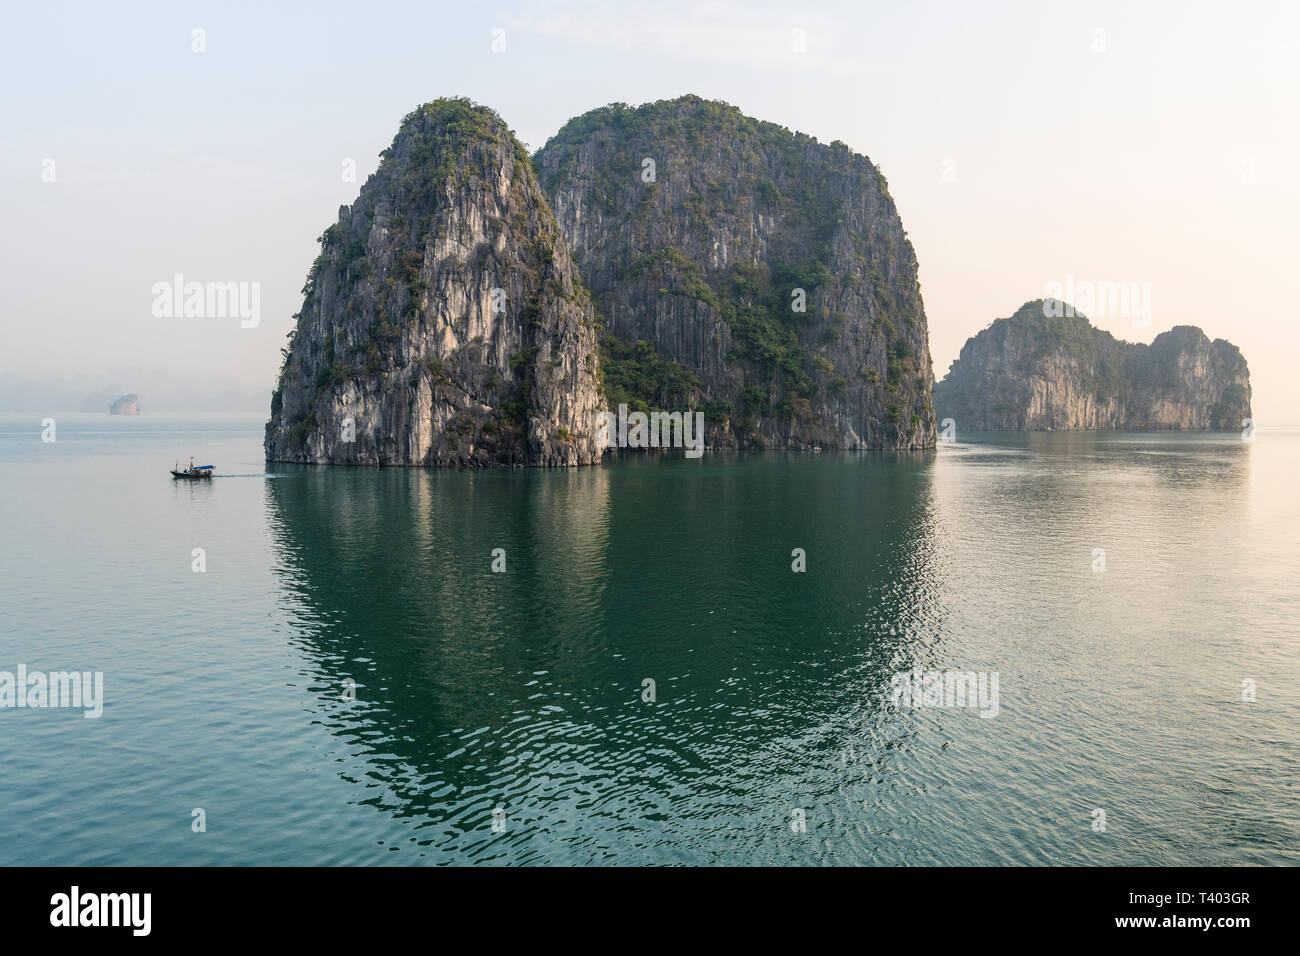 Limestones islets and islands of Ha Long Bay, Vietnam - Stock Image